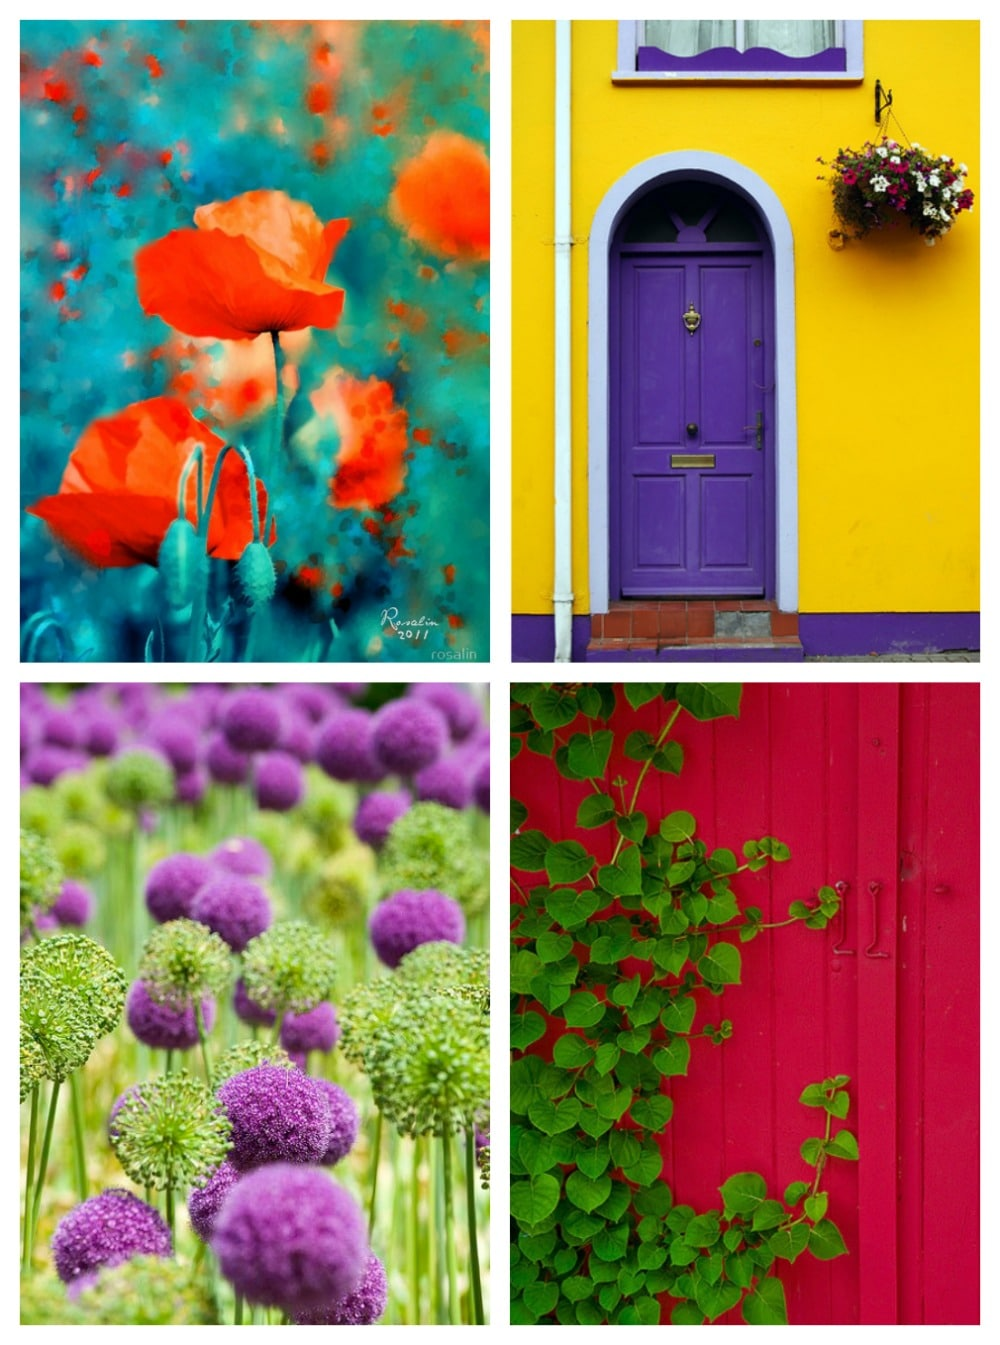 complementary colors!